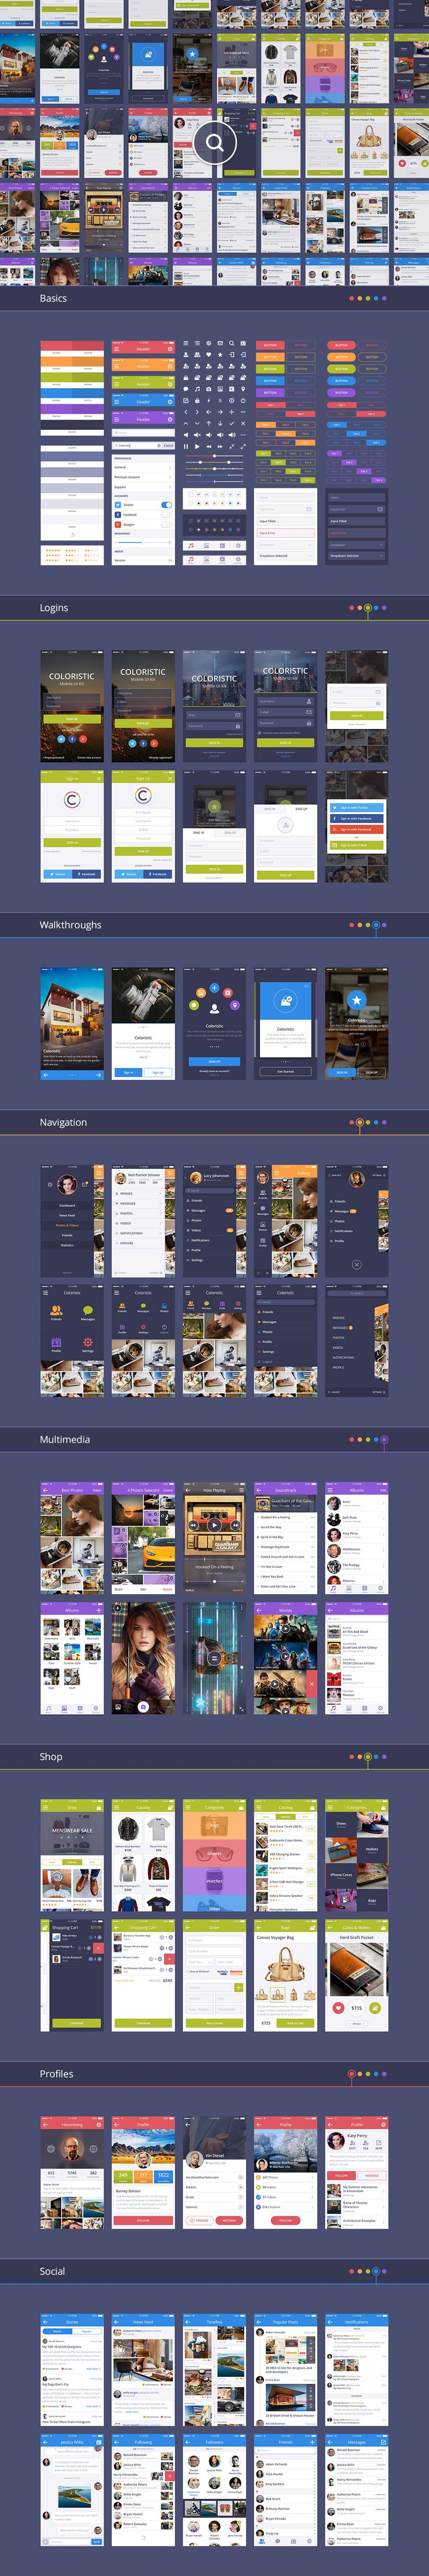 Coloristic: iOS / Android UI Kit by UI Chest on Creative Market